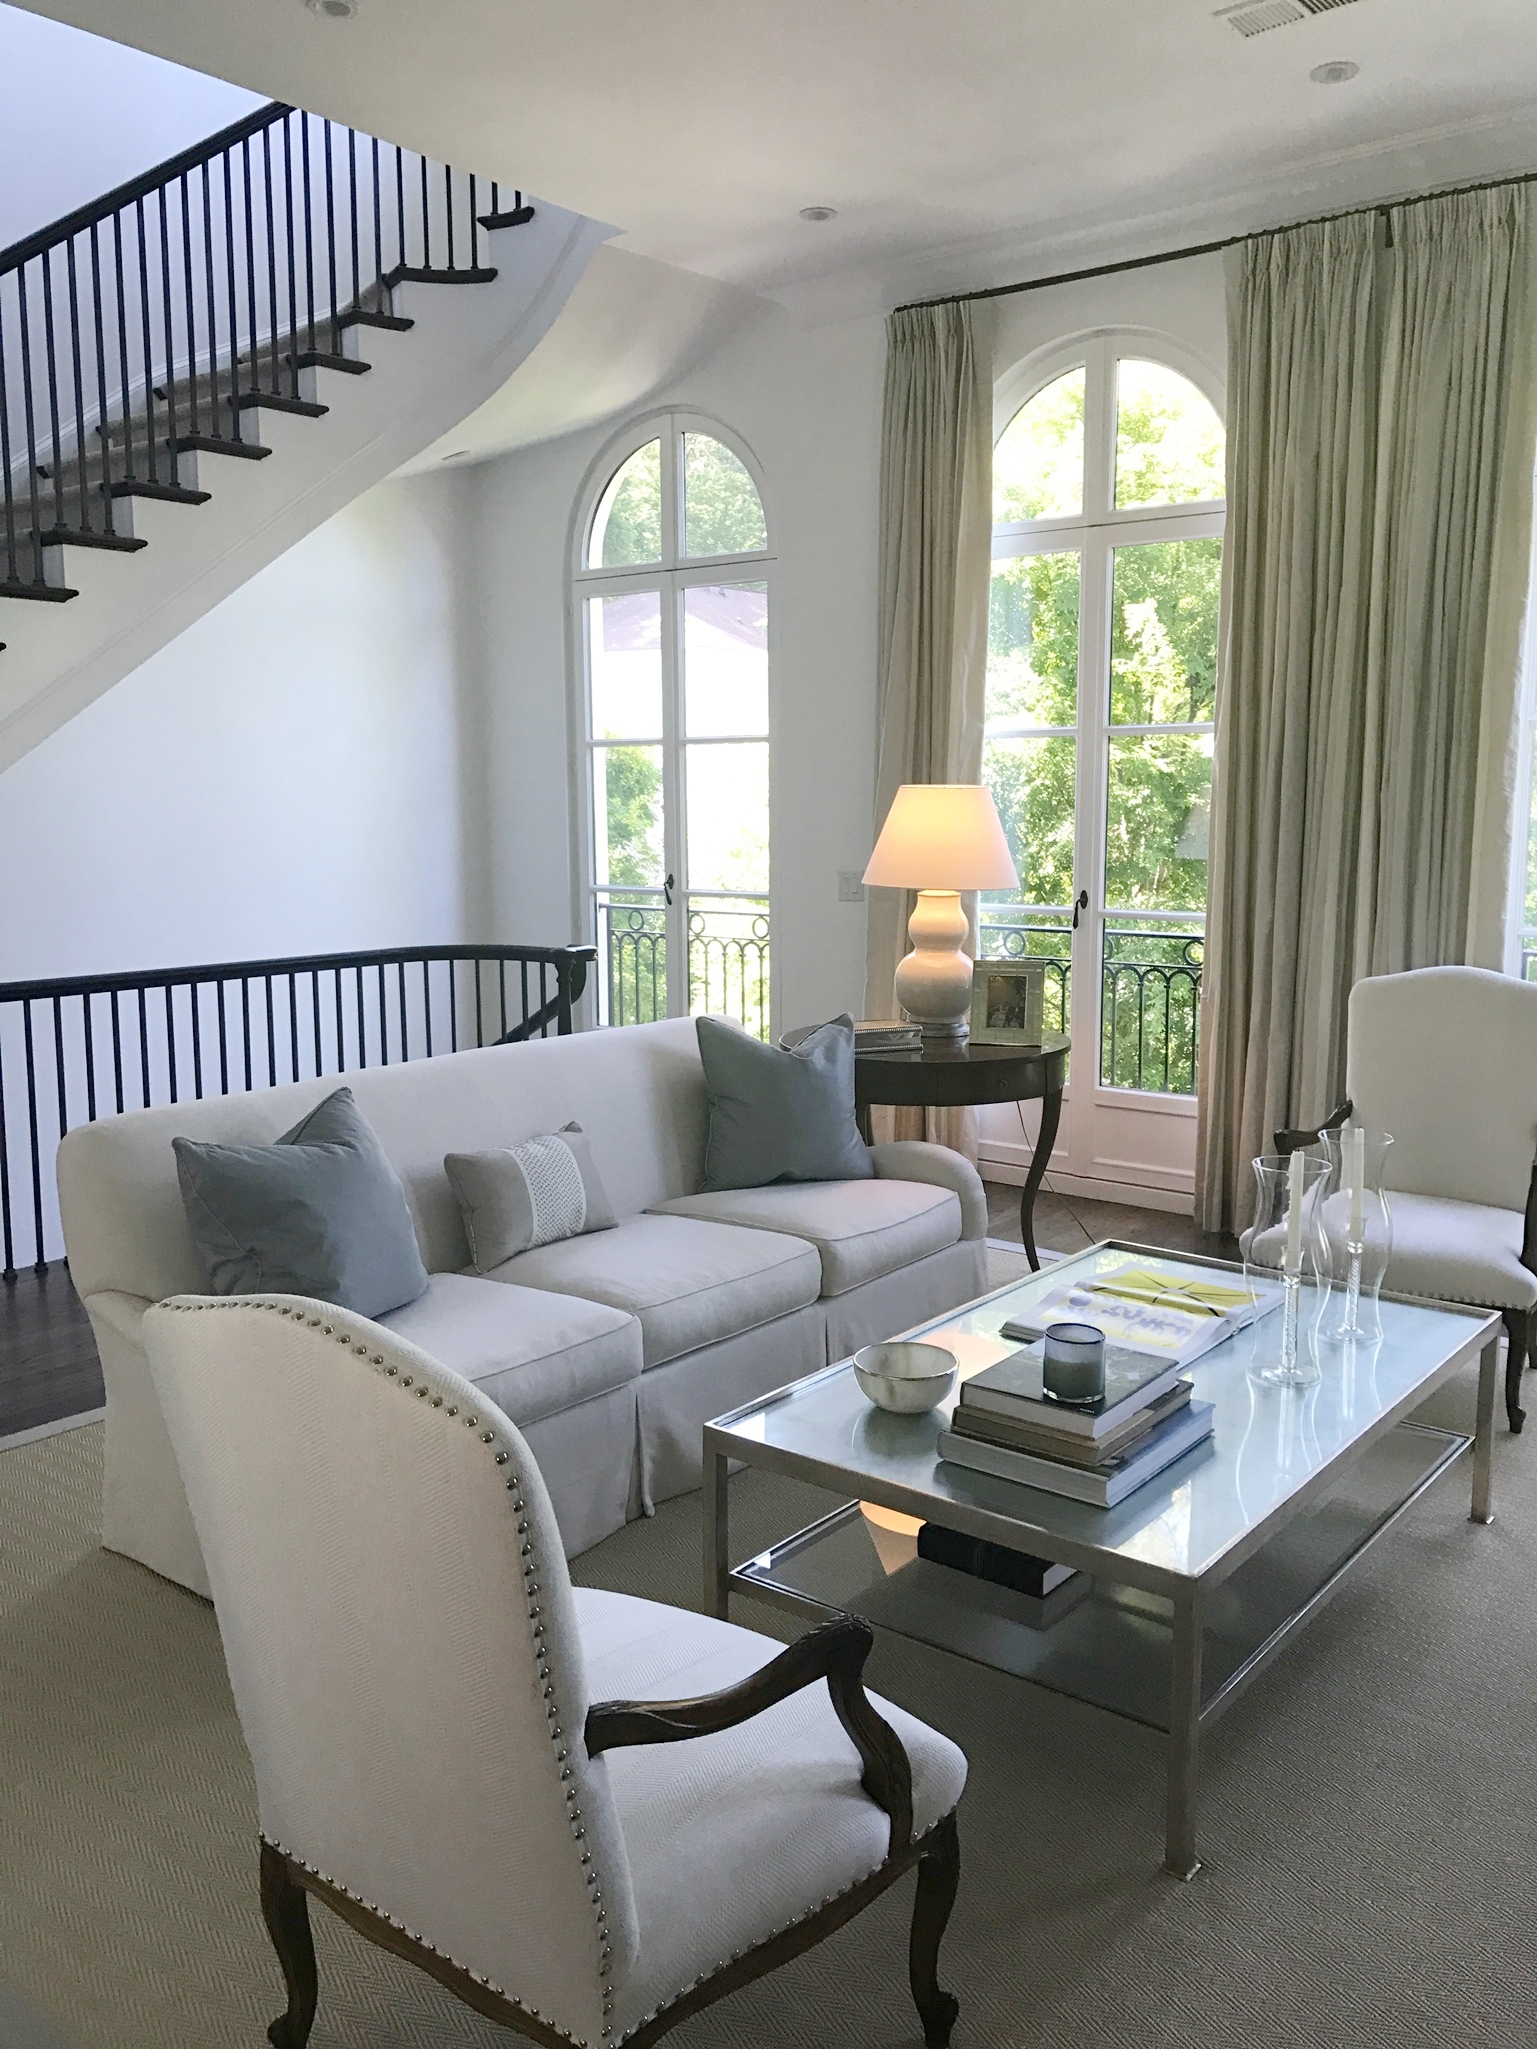 French living room design with spiral staircase and arched window details.